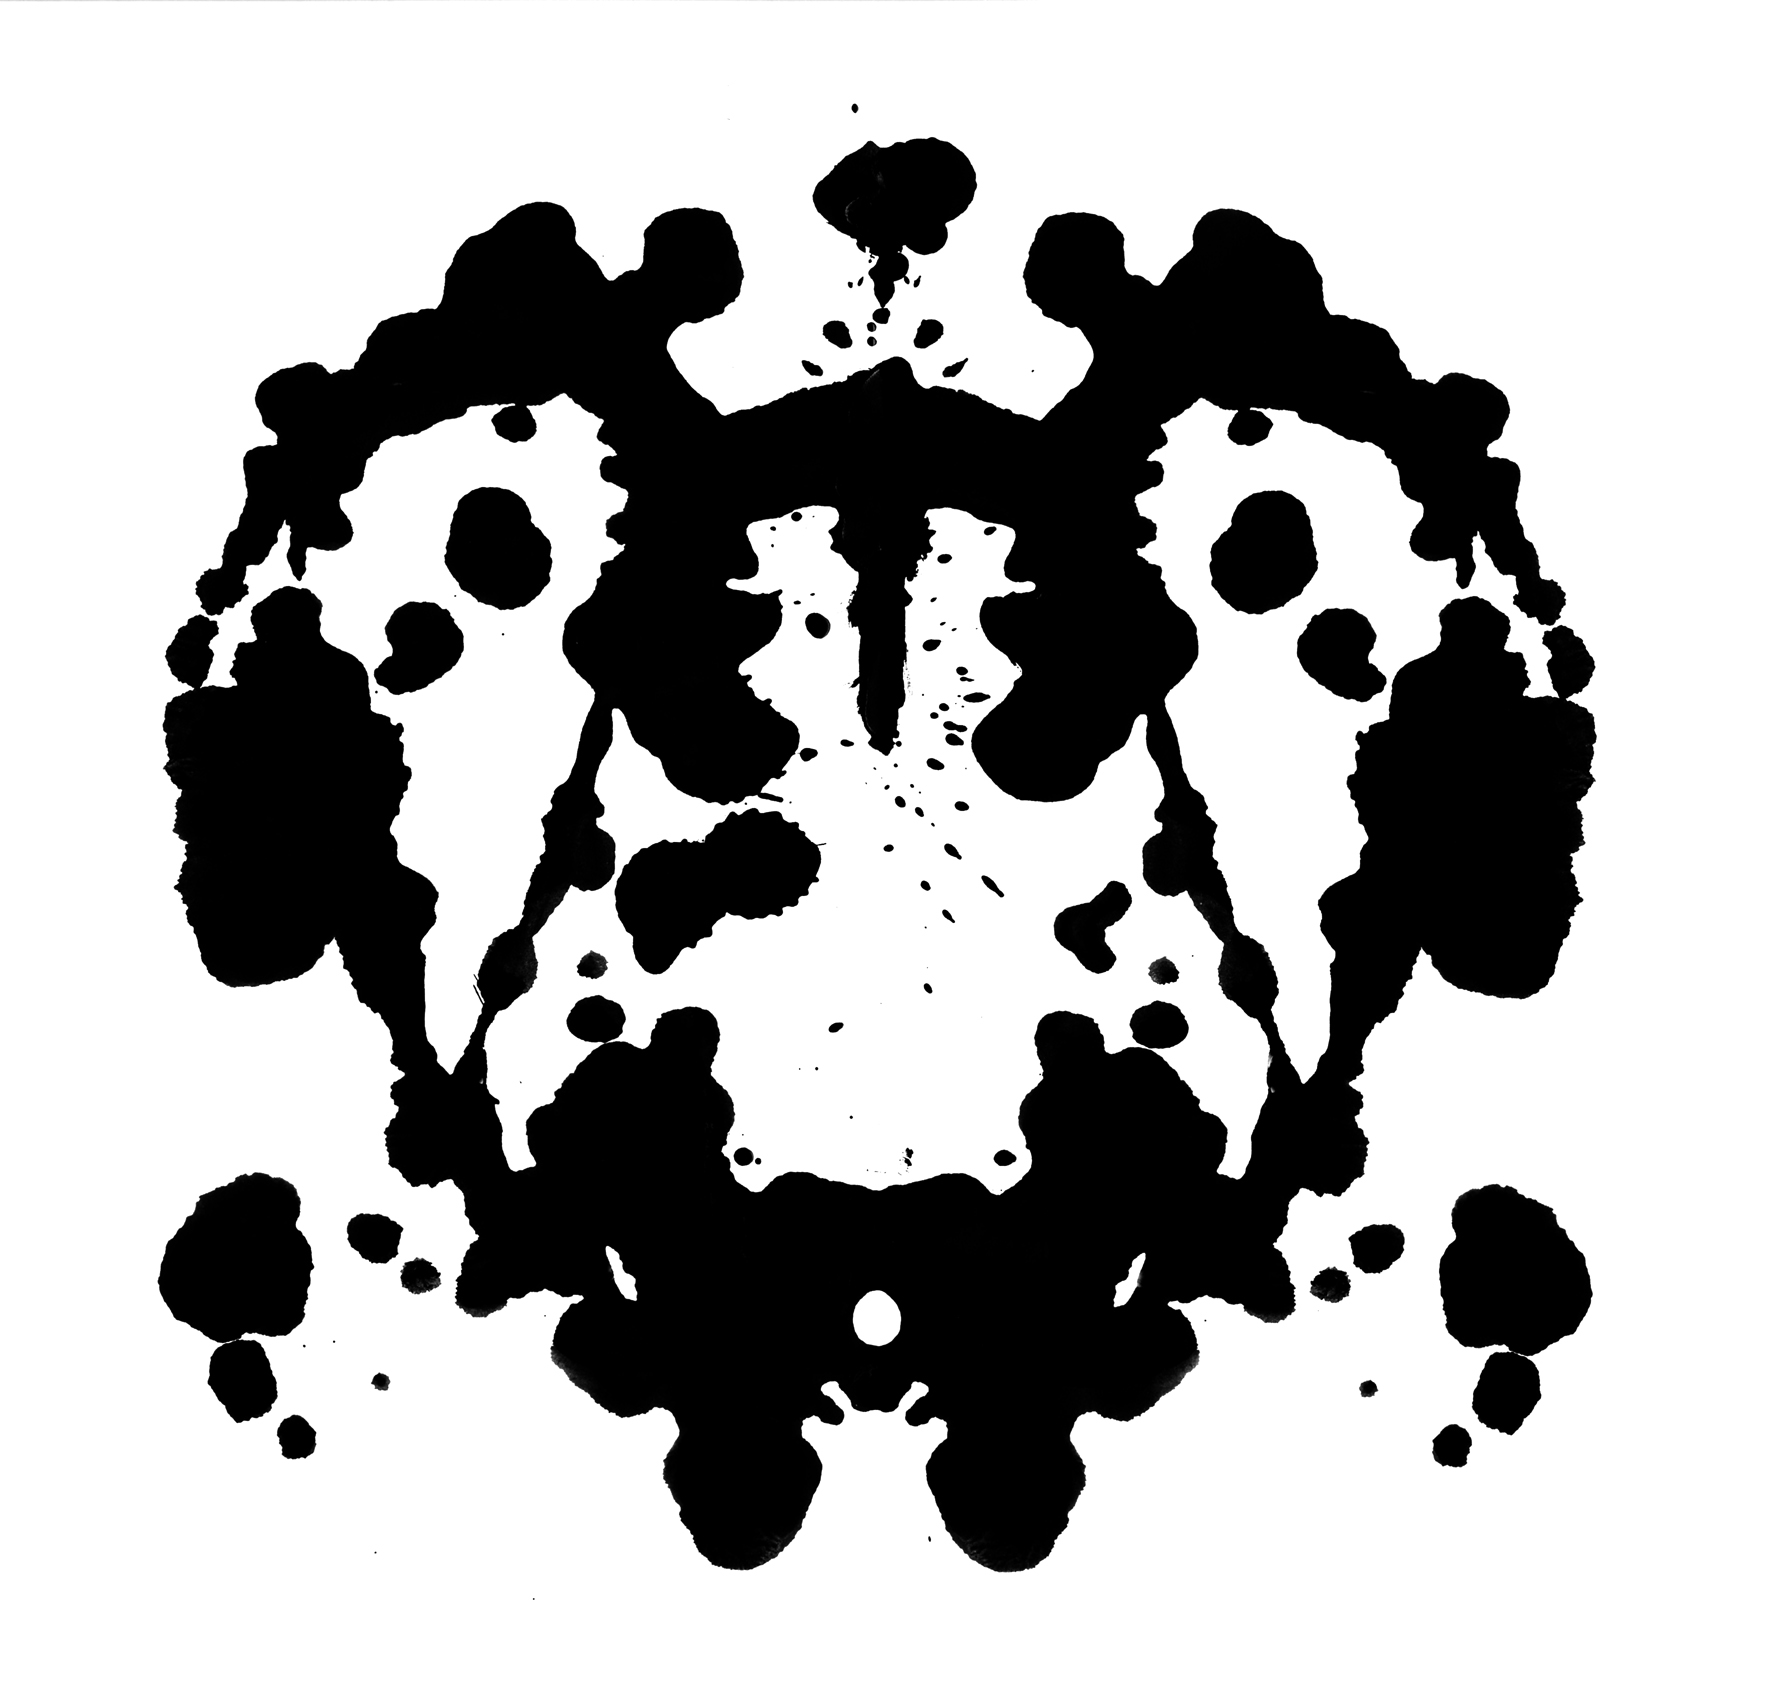 What's behind the Rorschach inkblot test?